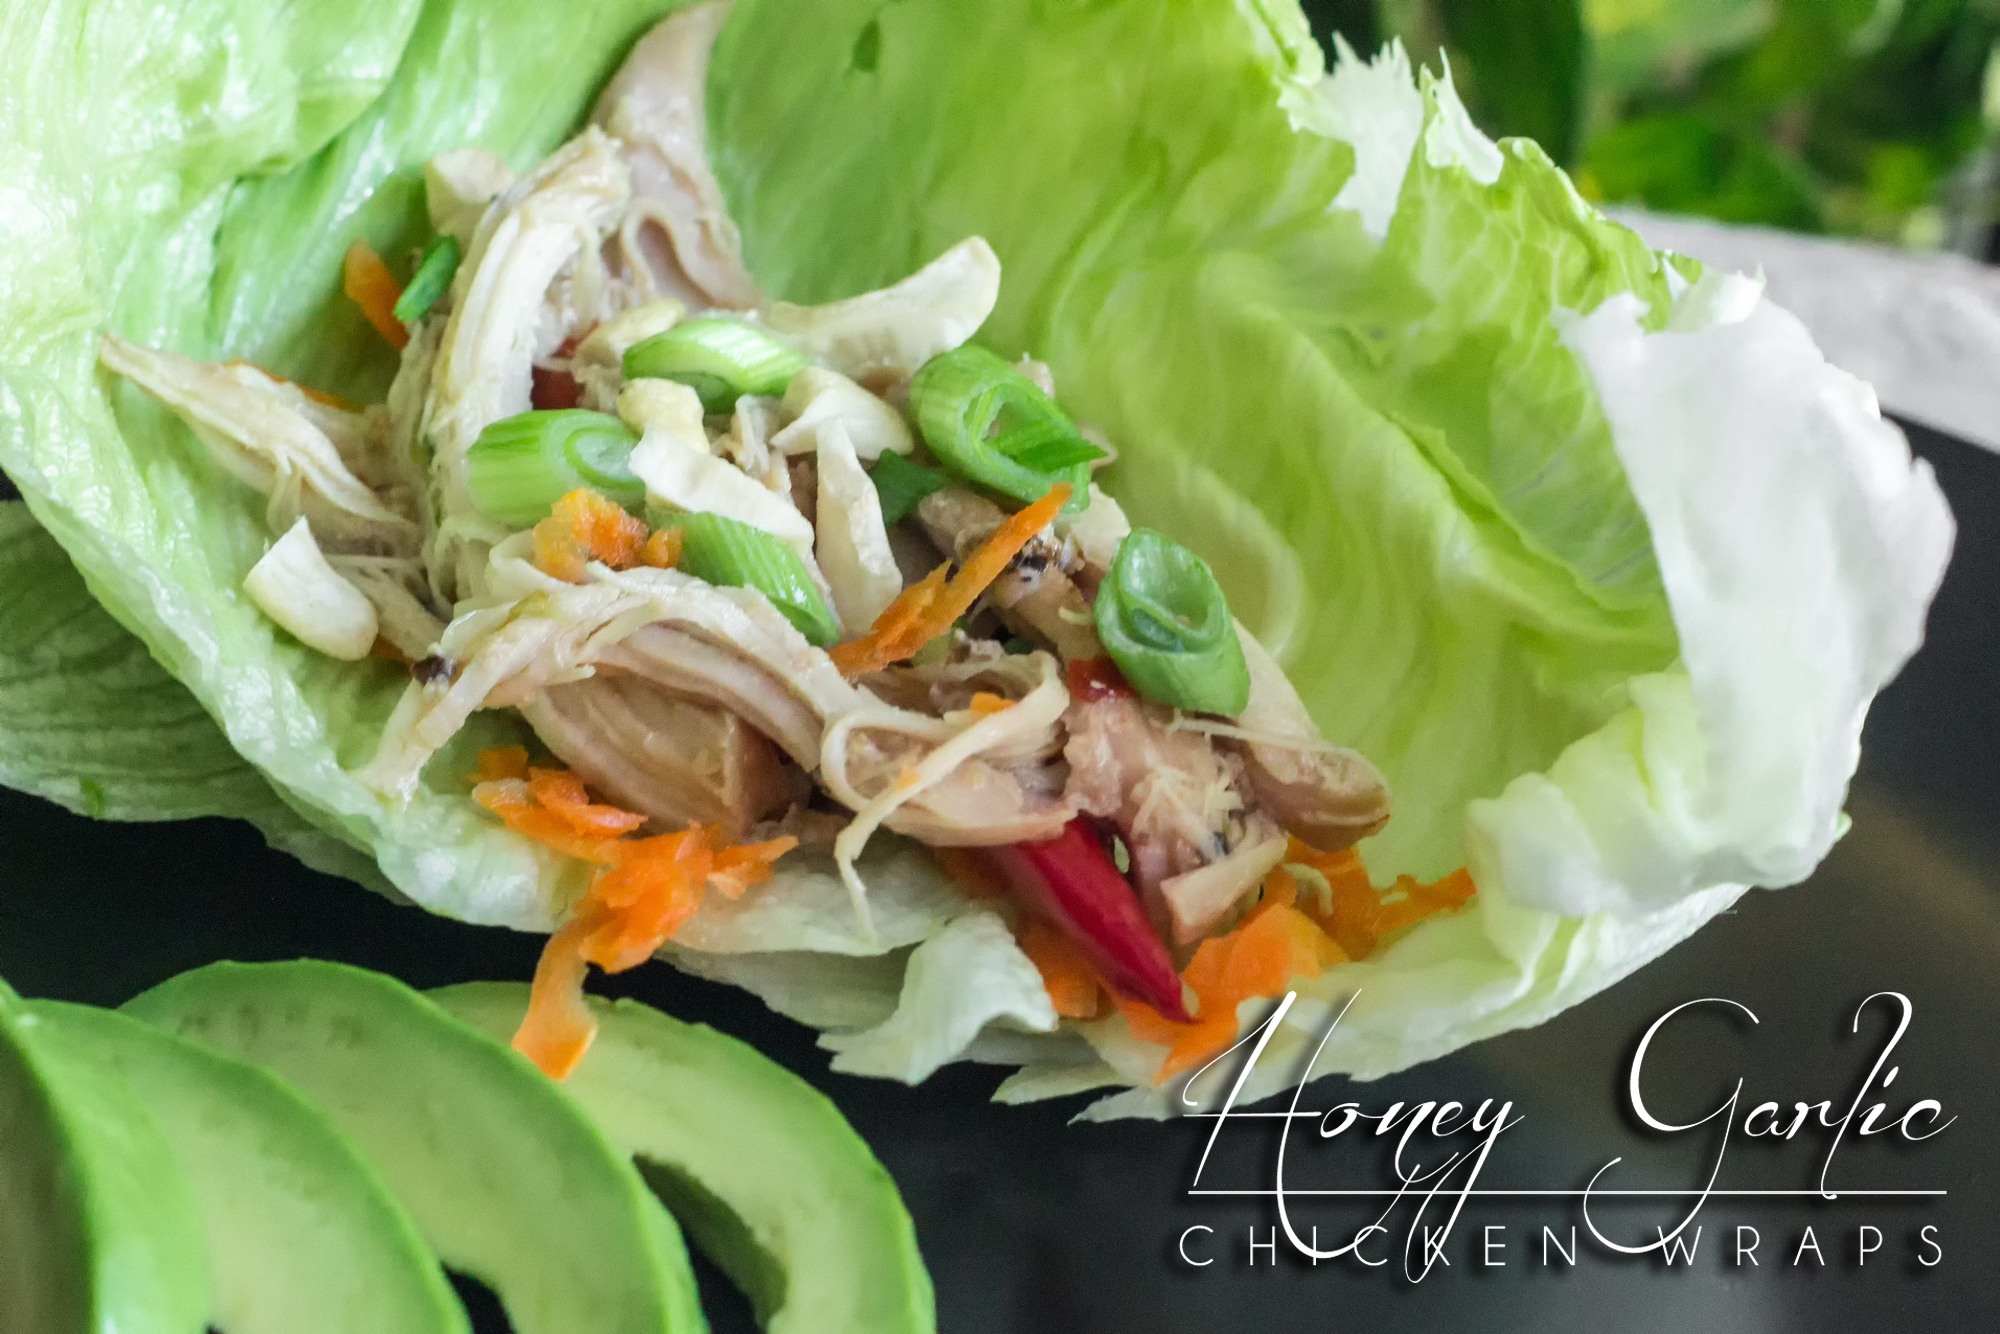 Crisp lettuce & raw veggies provide a satisfying crunch balancing the sweet & savory fermented honey garlic chicken http://wp.me/p4Aygm-26M